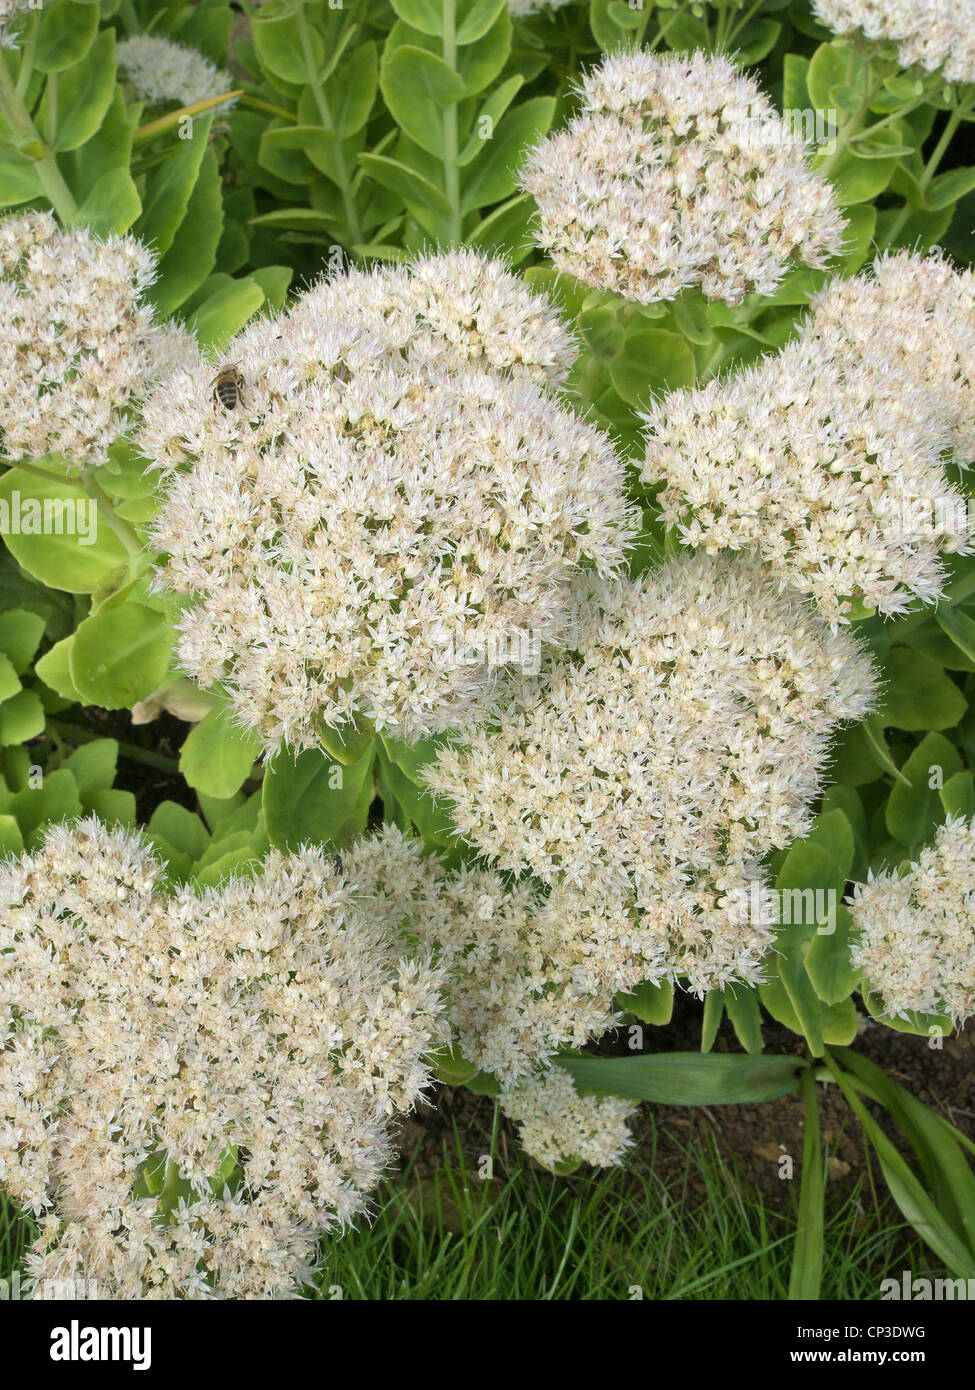 Flowering Sedum spectabile Cultivar 'Iceberg' in Autumn commonly known as the Ice Plant. Stock Photo